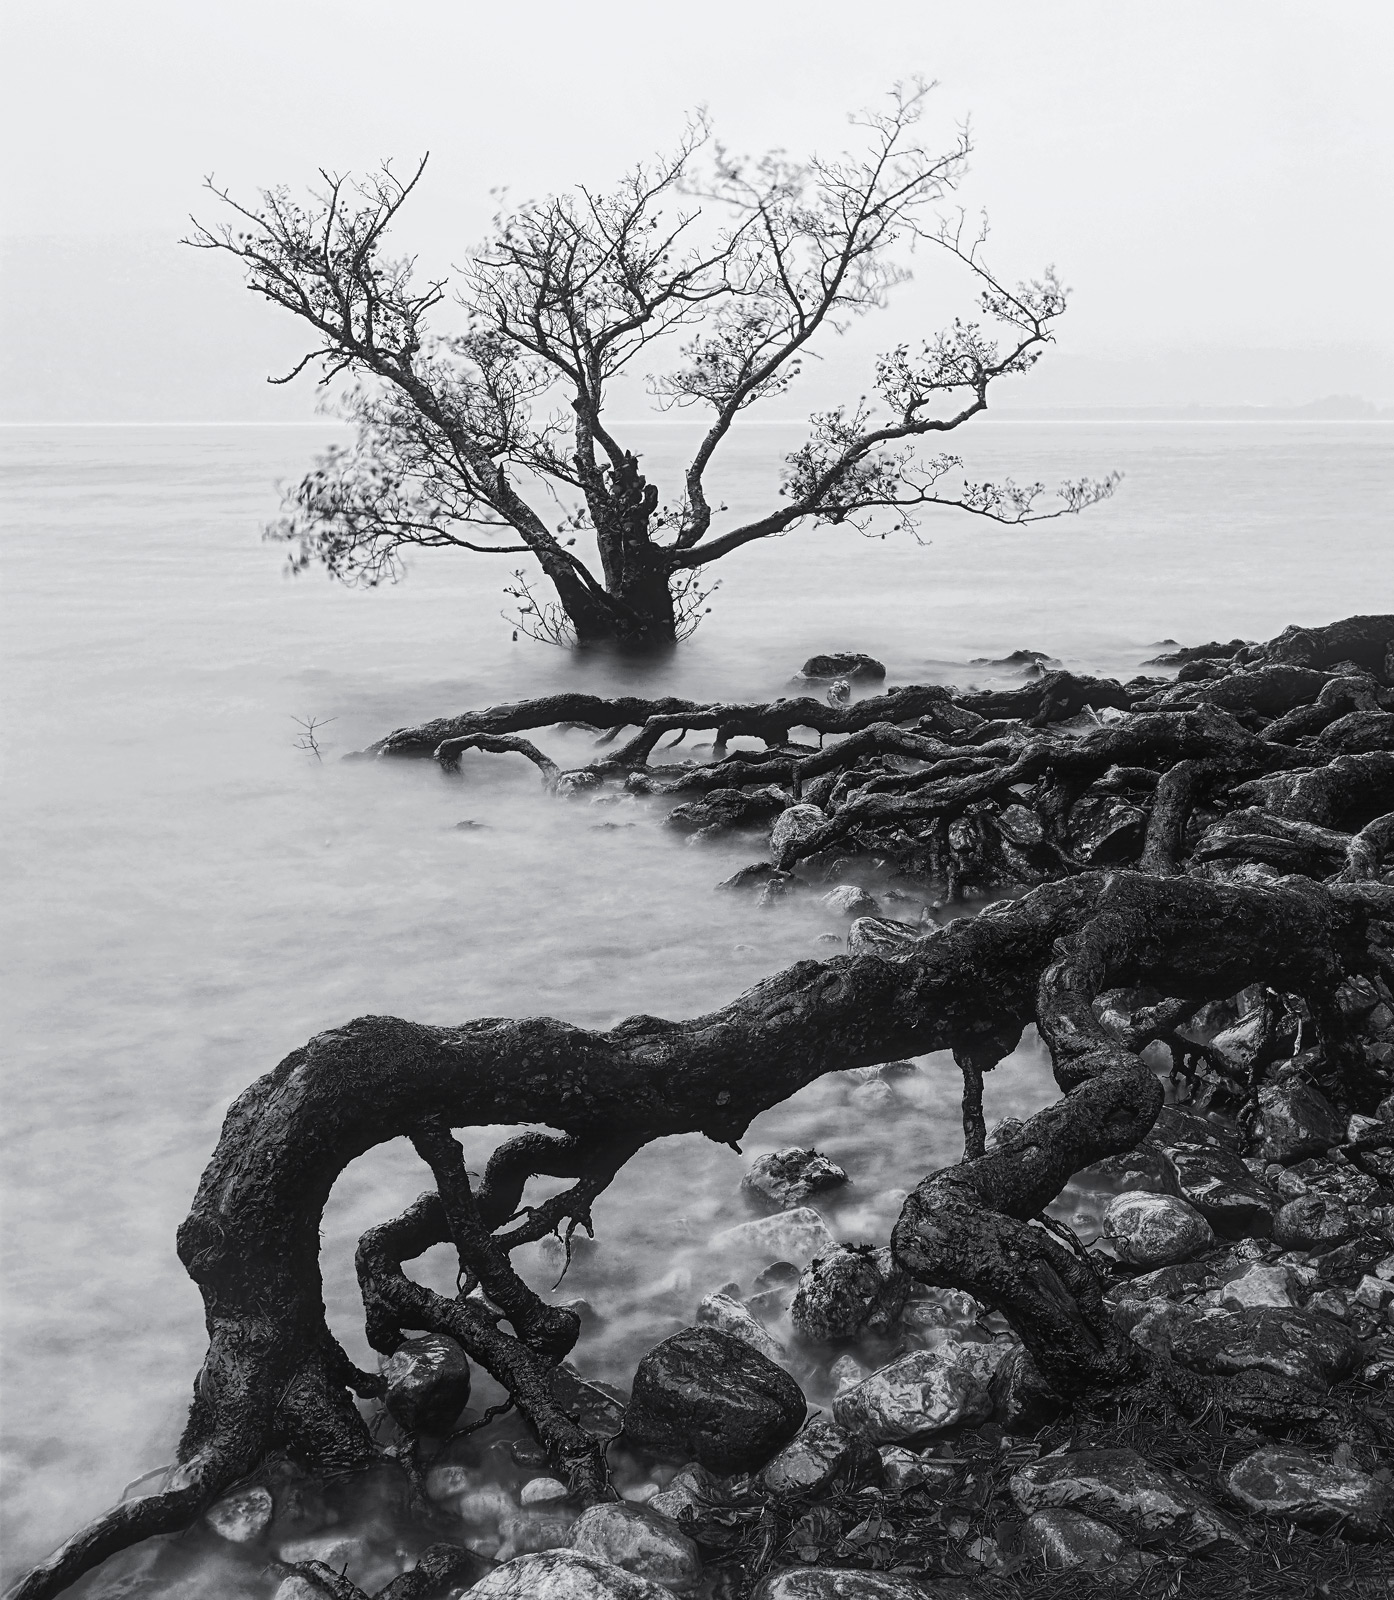 The creeping wet roots of some partially submerged scots pine trees reach out there sinister tendrils across the bleak waters...